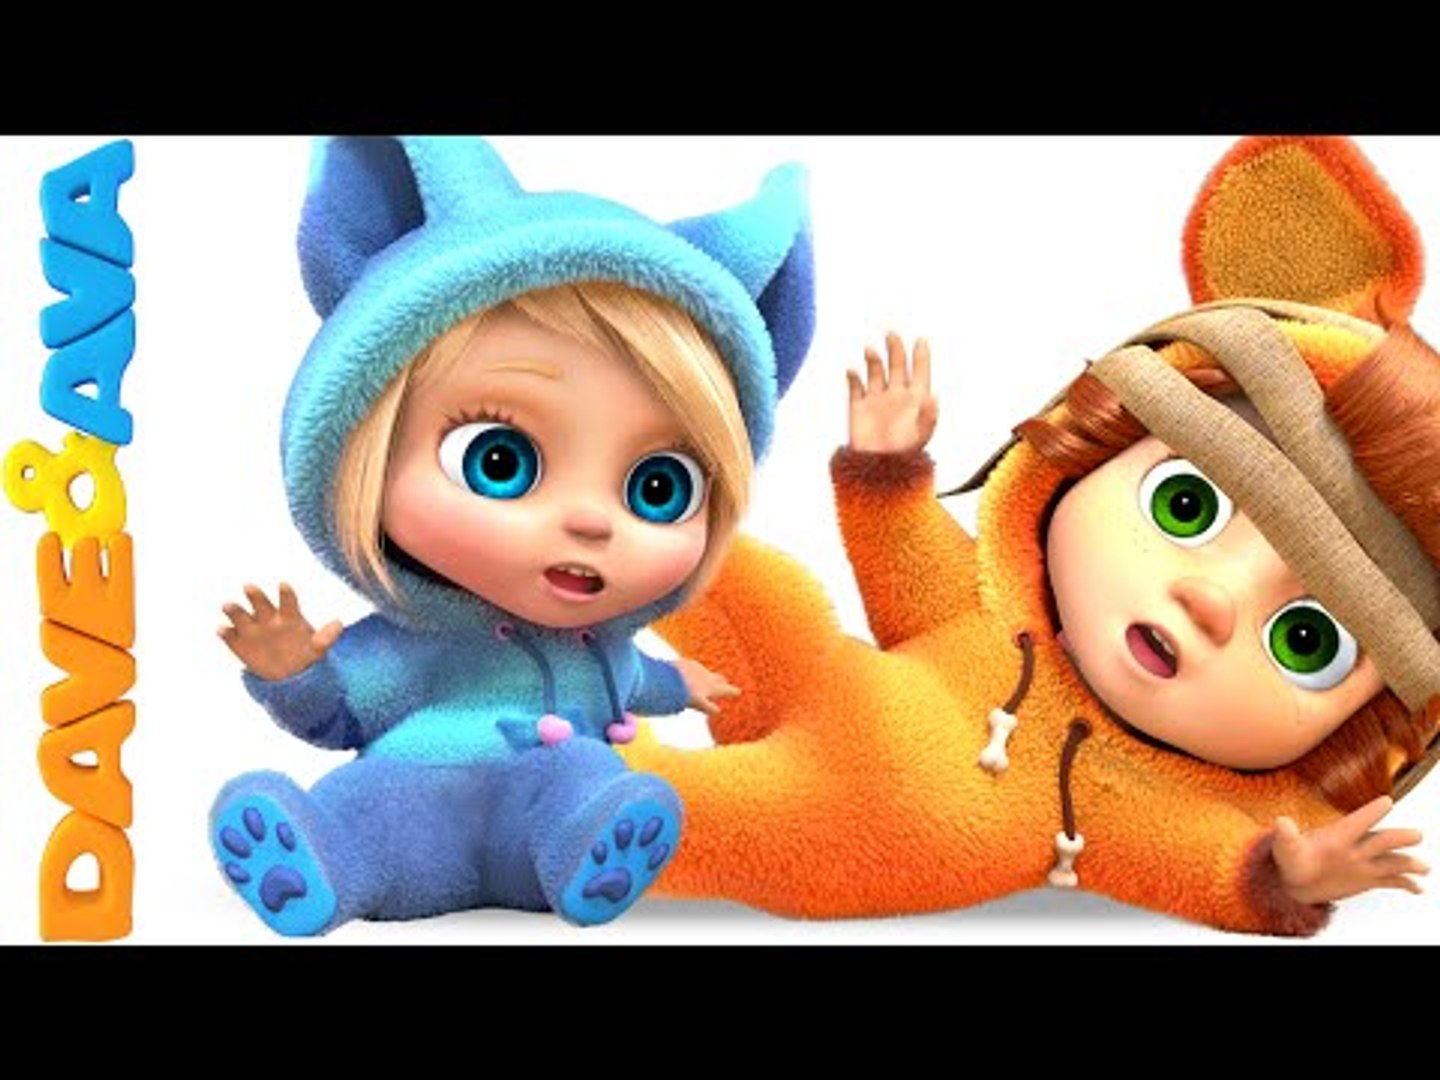 Jack and Jill | Nursery Rhymes and Baby Songs from Dave and Ava bs